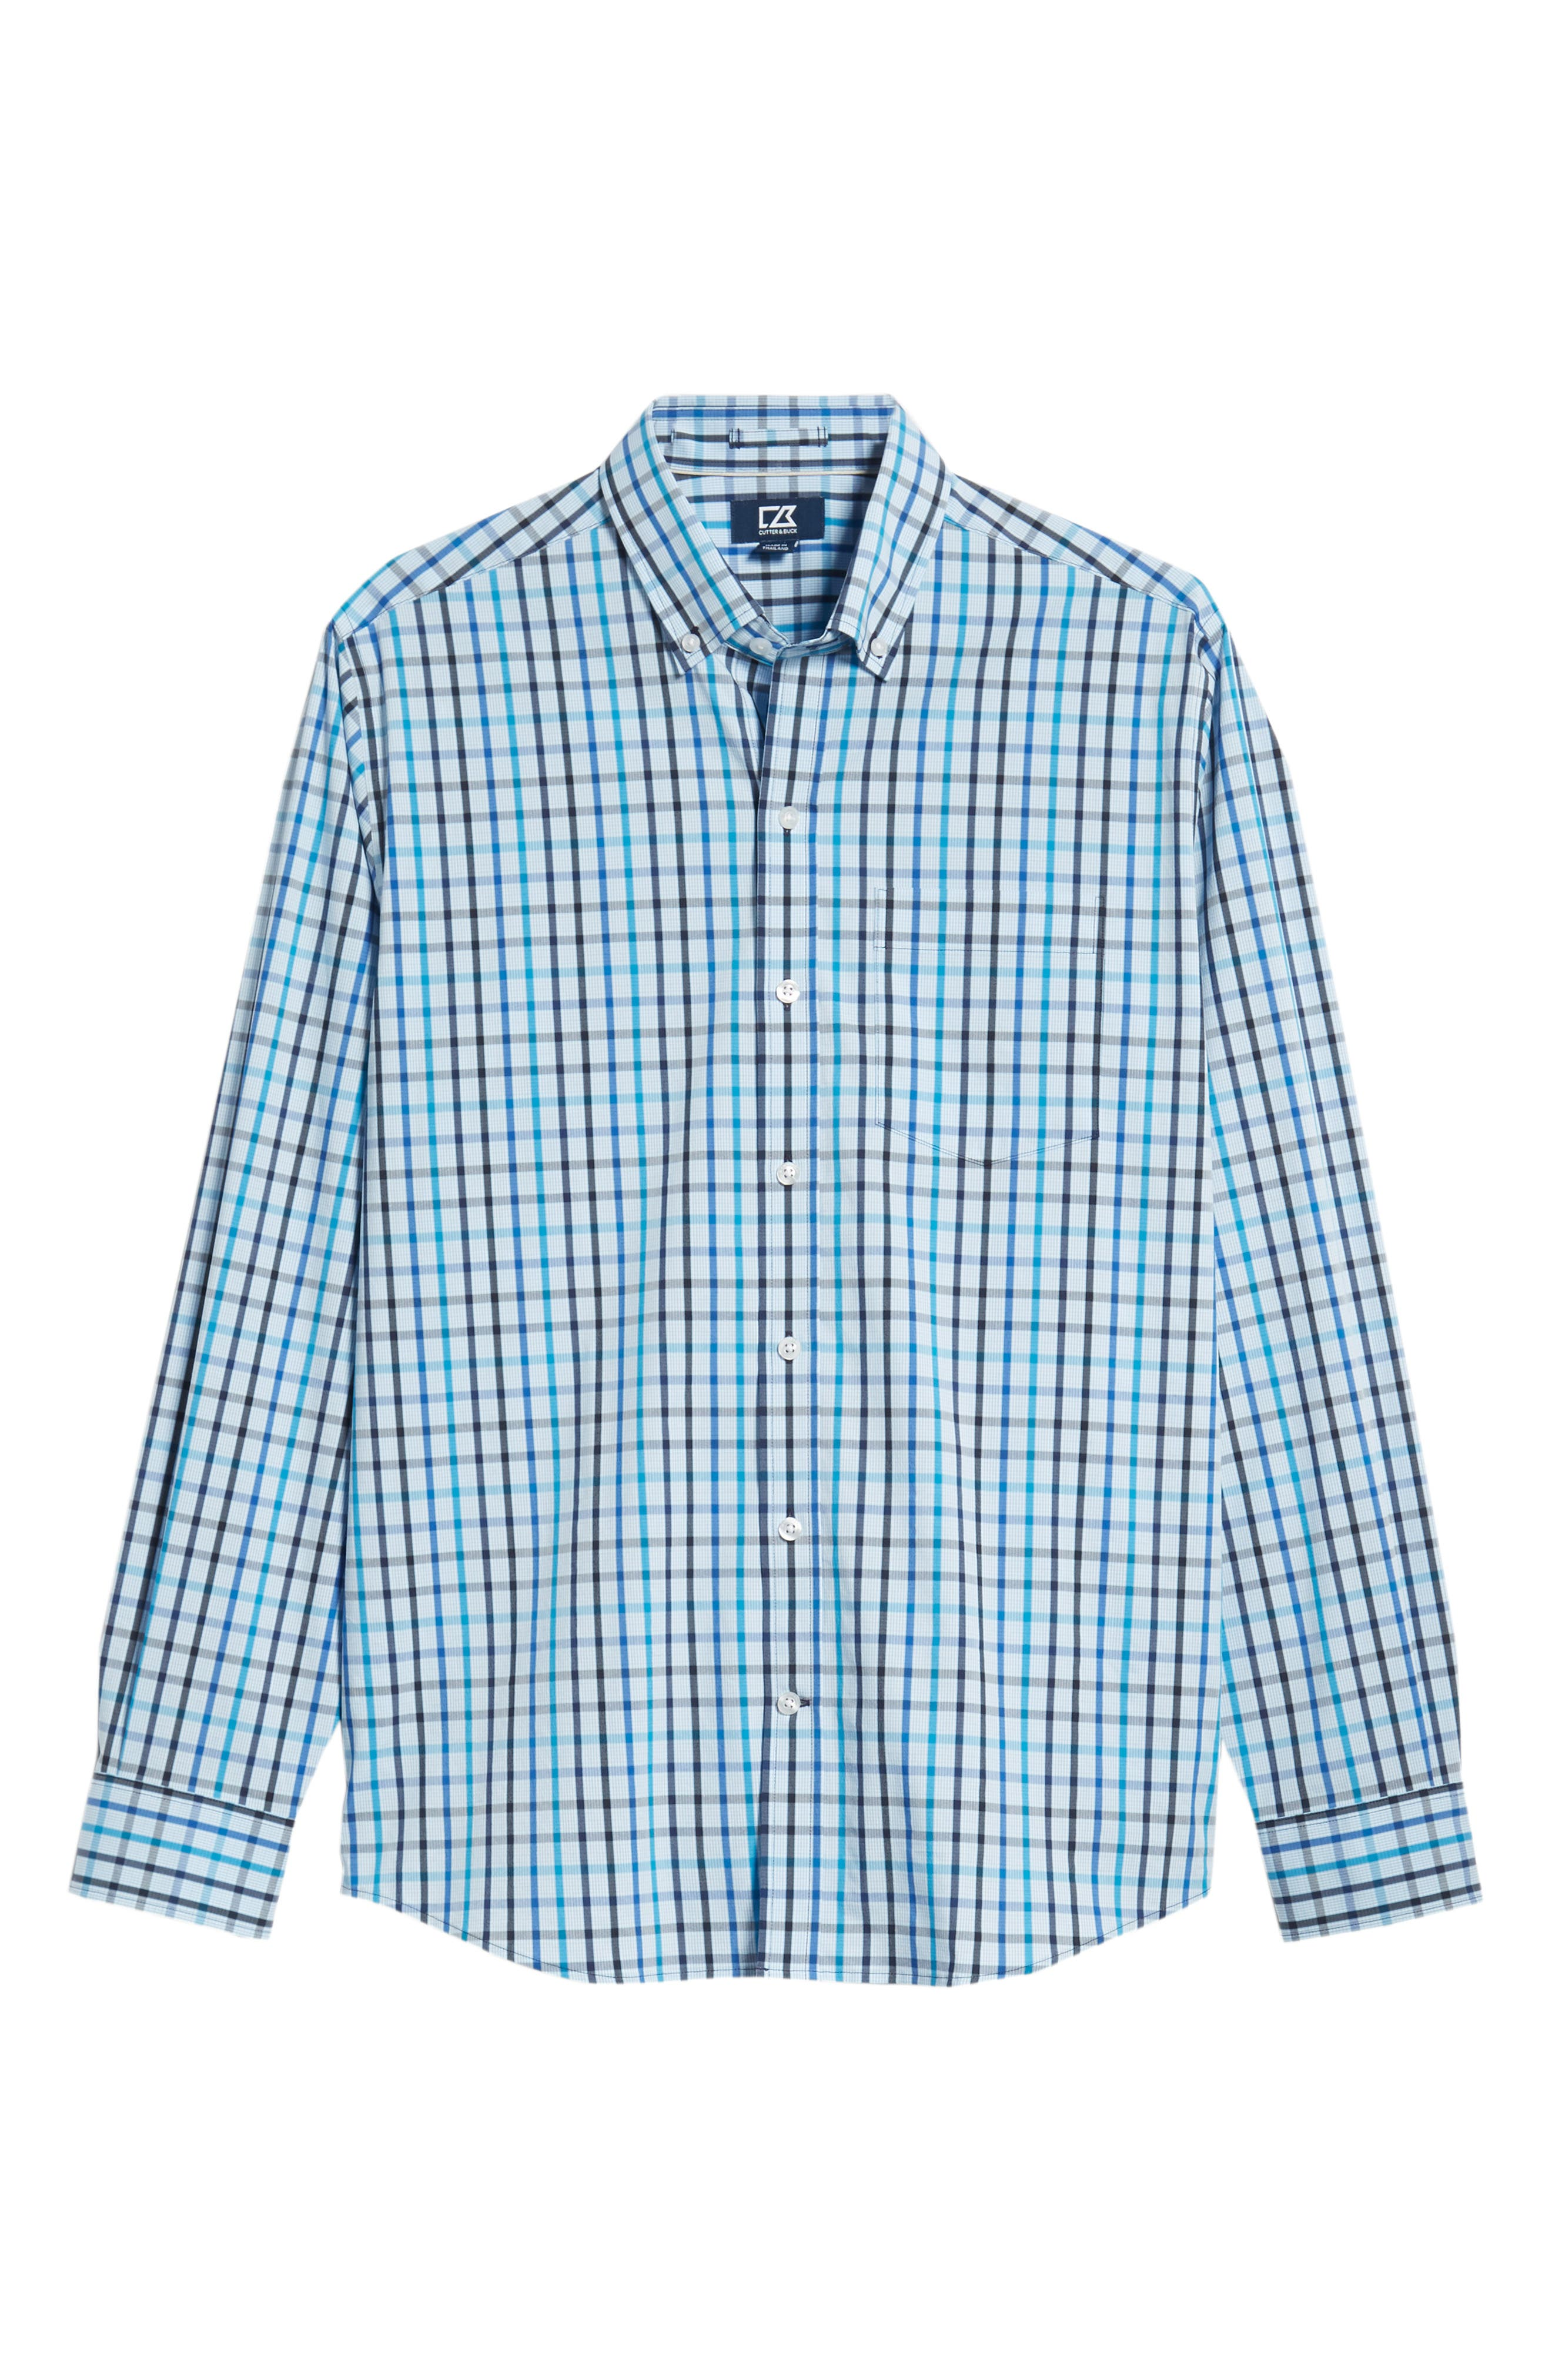 Clarence Regular Fit Check Sport Shirt,                             Alternate thumbnail 5, color,                             LIBERTY NAVY